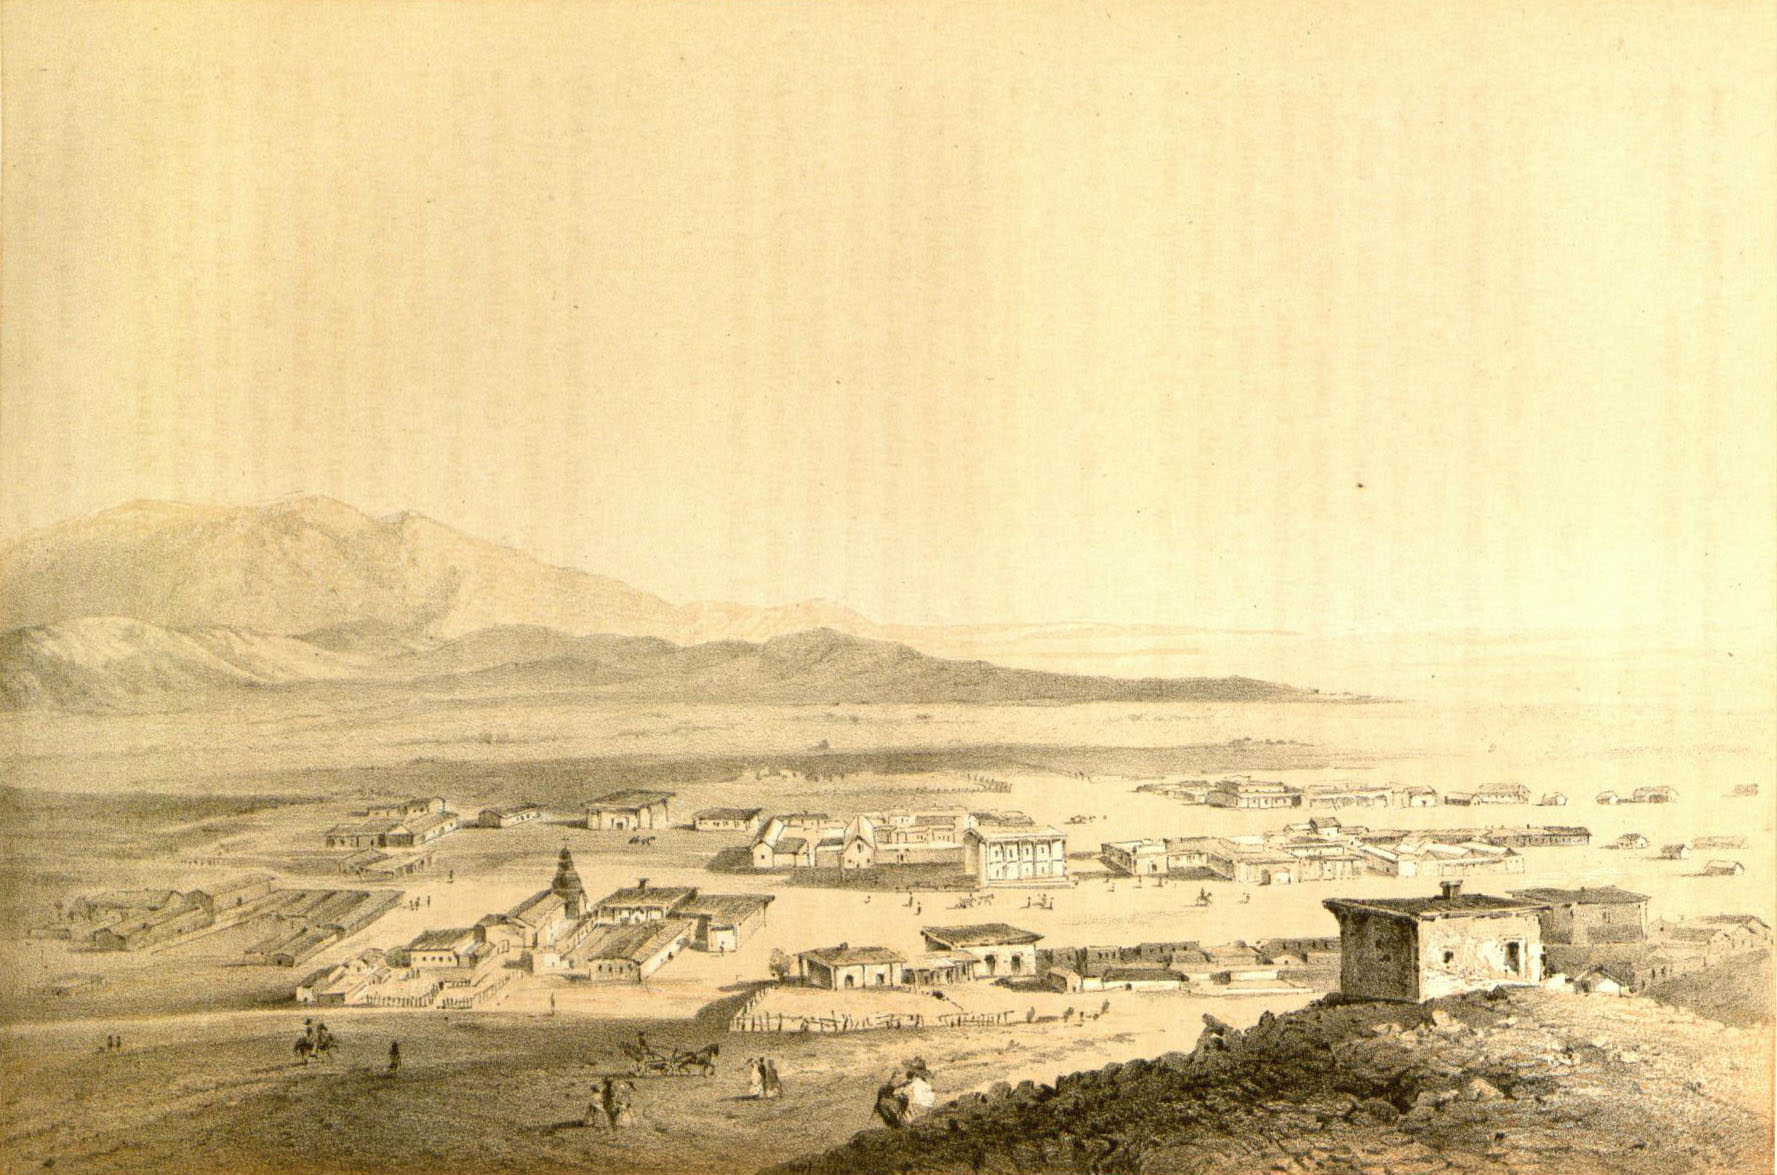 Los Angeles in 1853